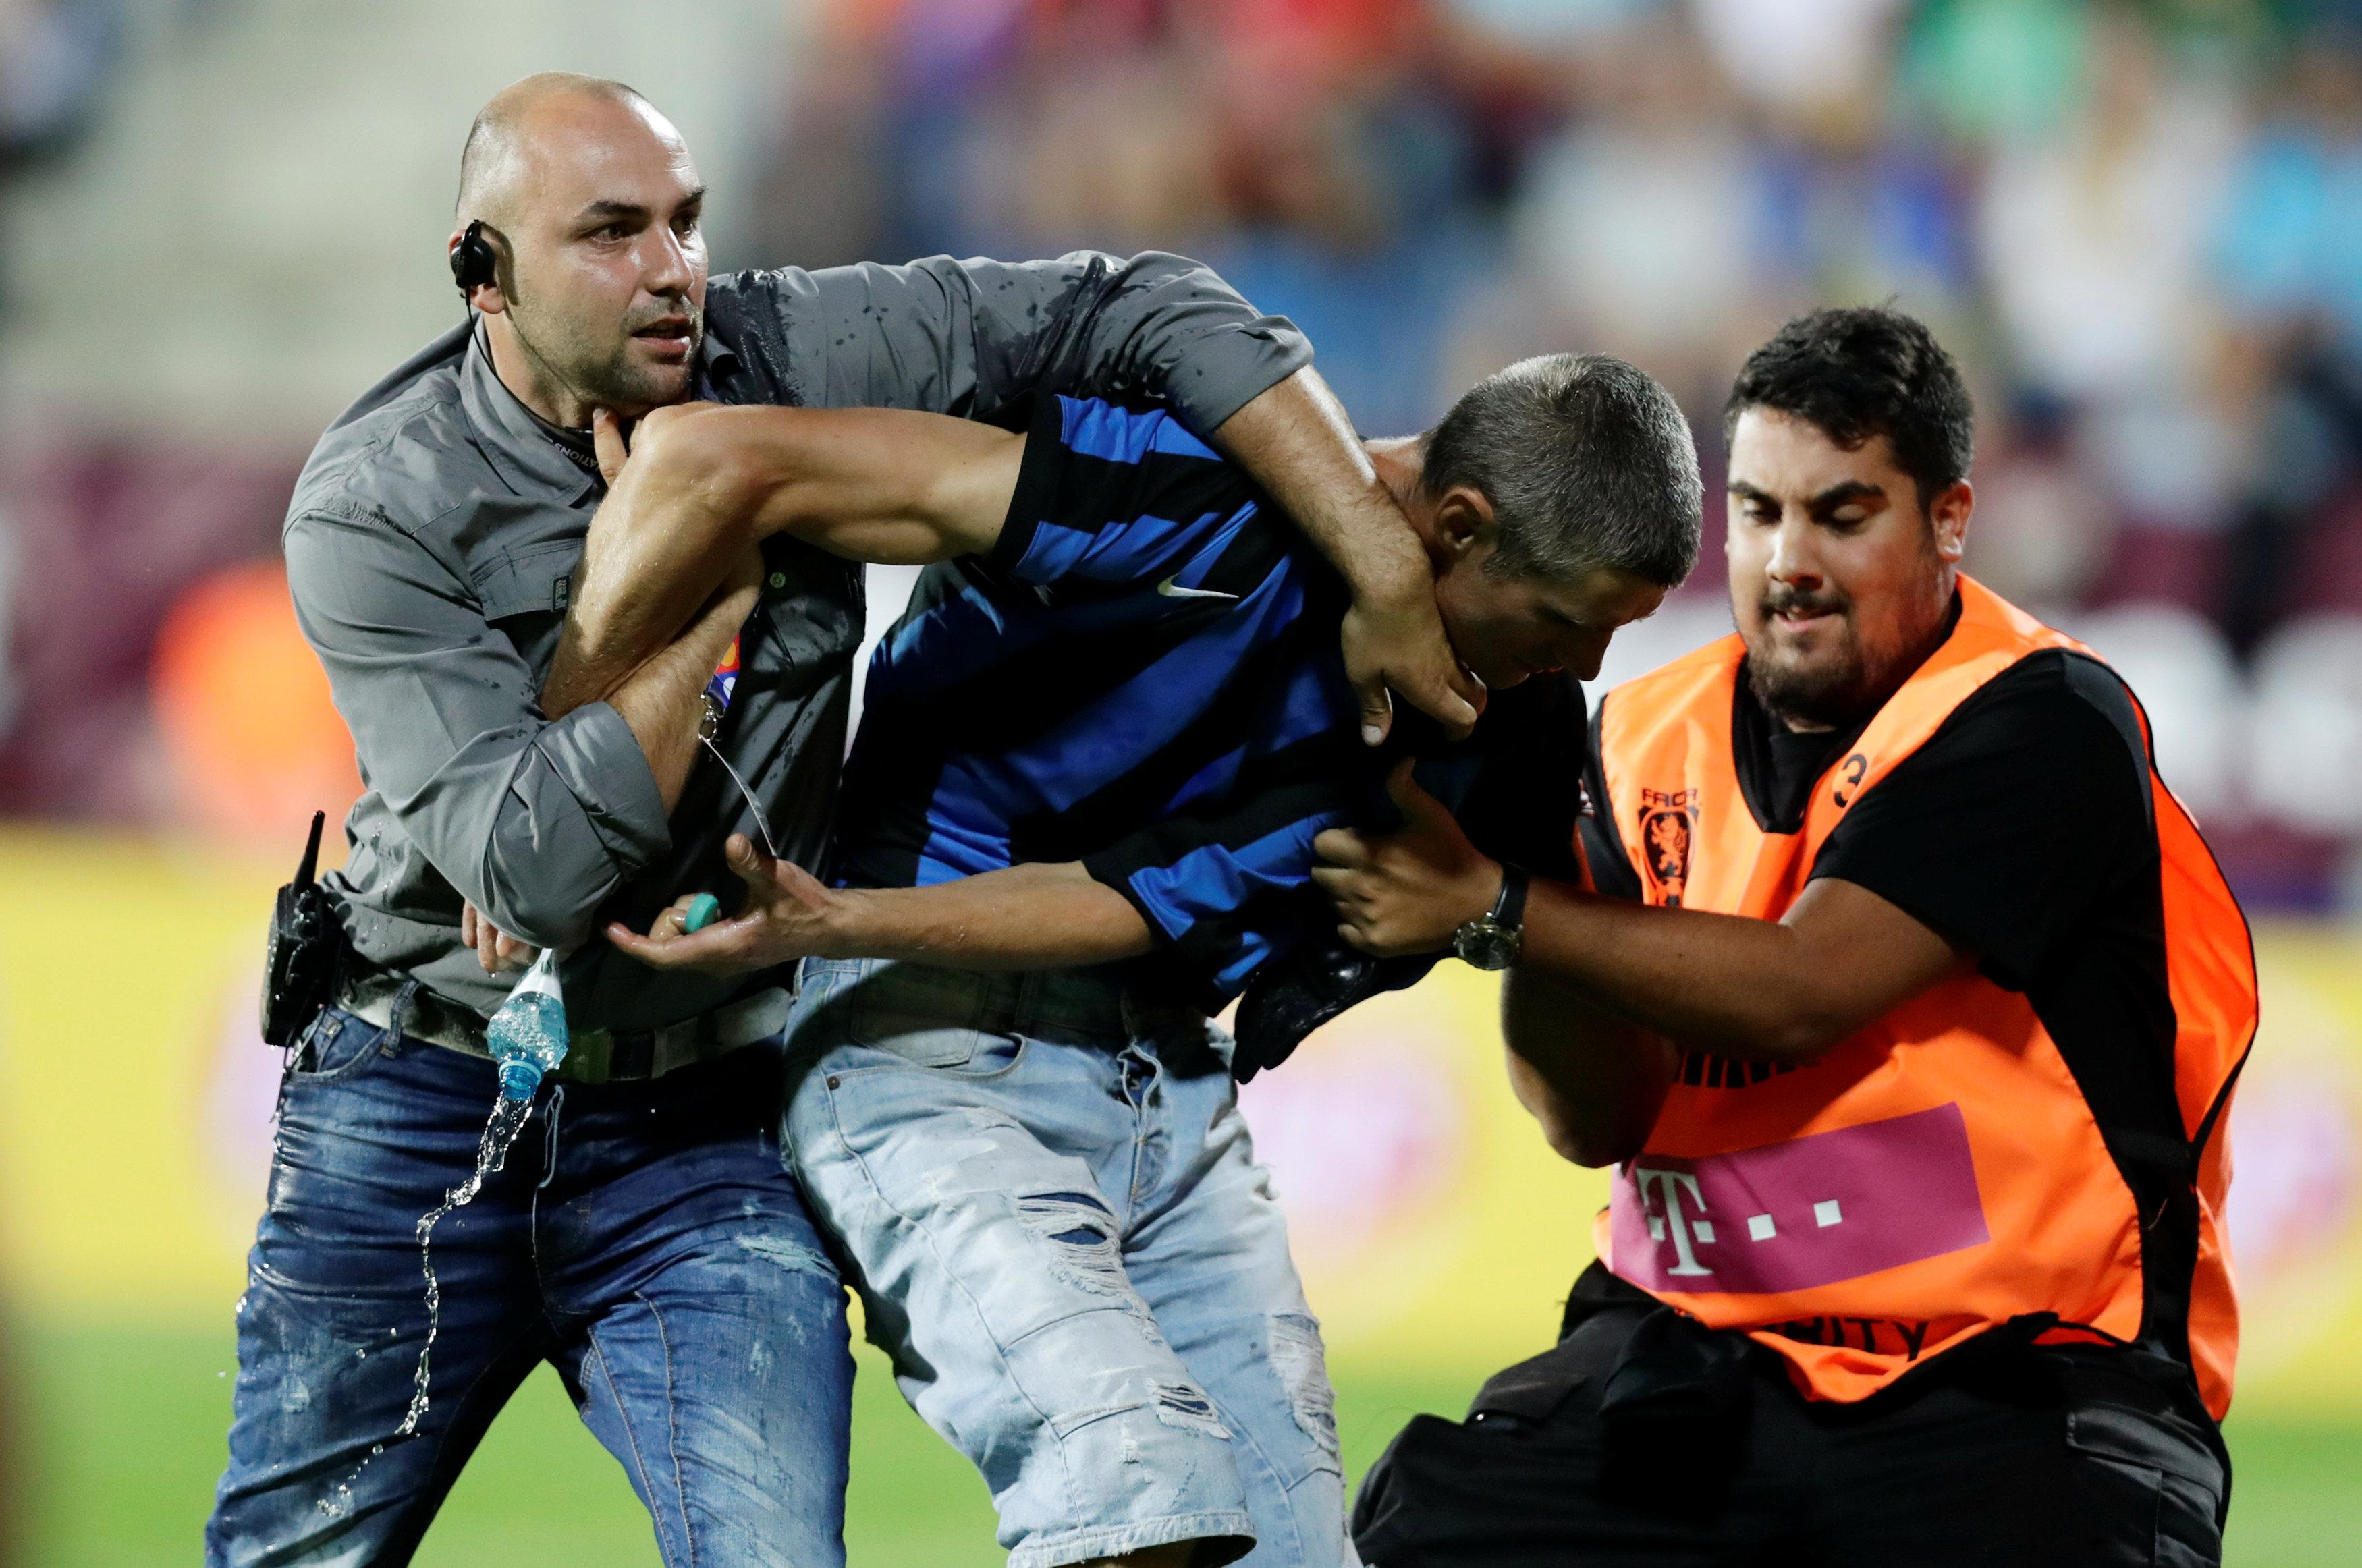 Security guards apprehend a pitch invader after Thursday night's game